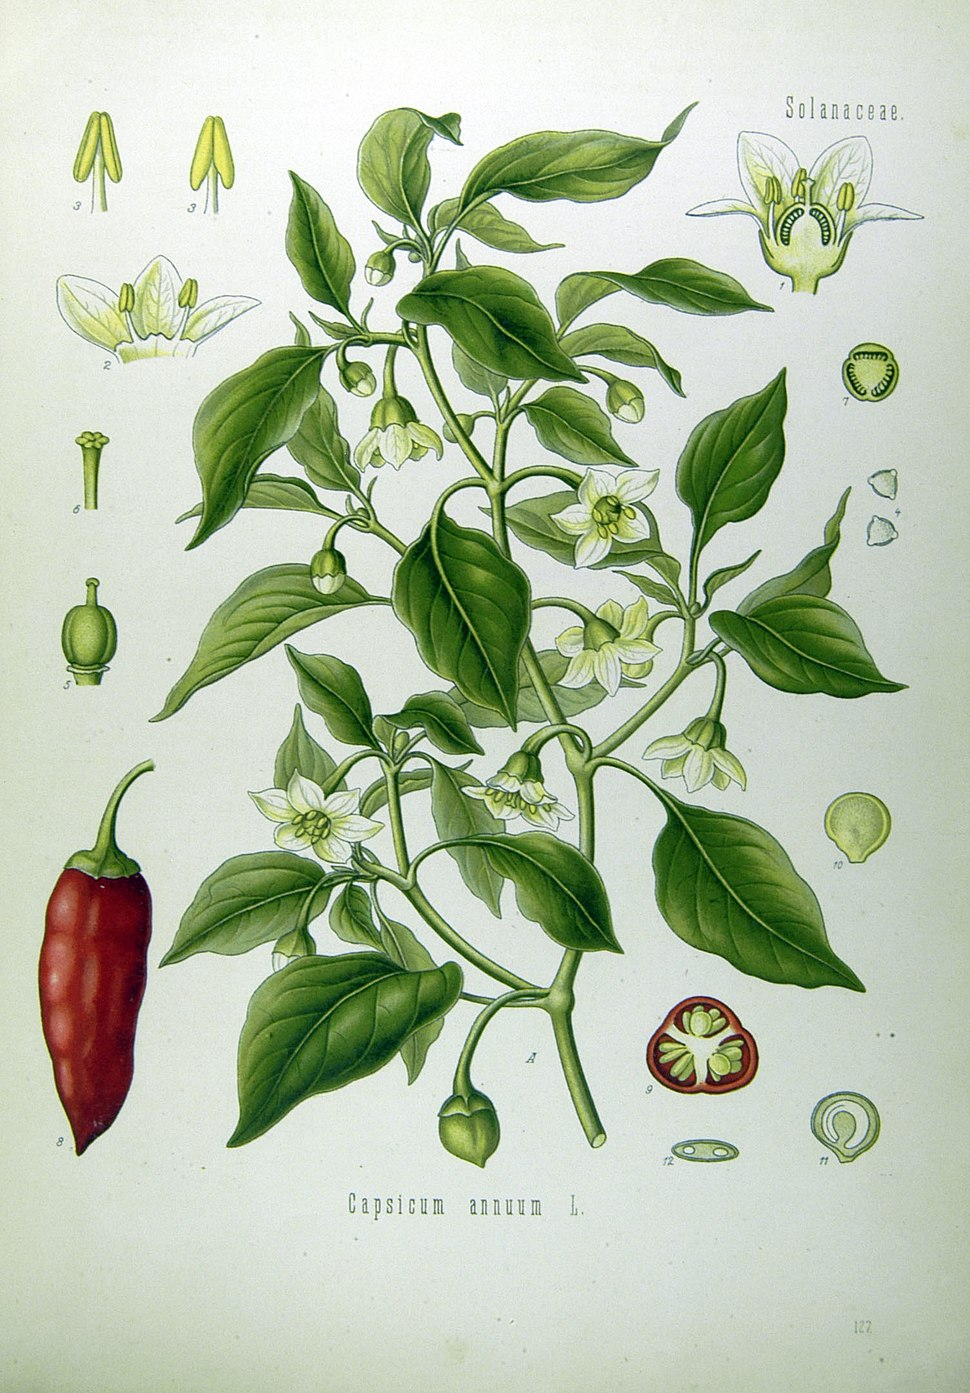 Illustration Capsicum annuum0